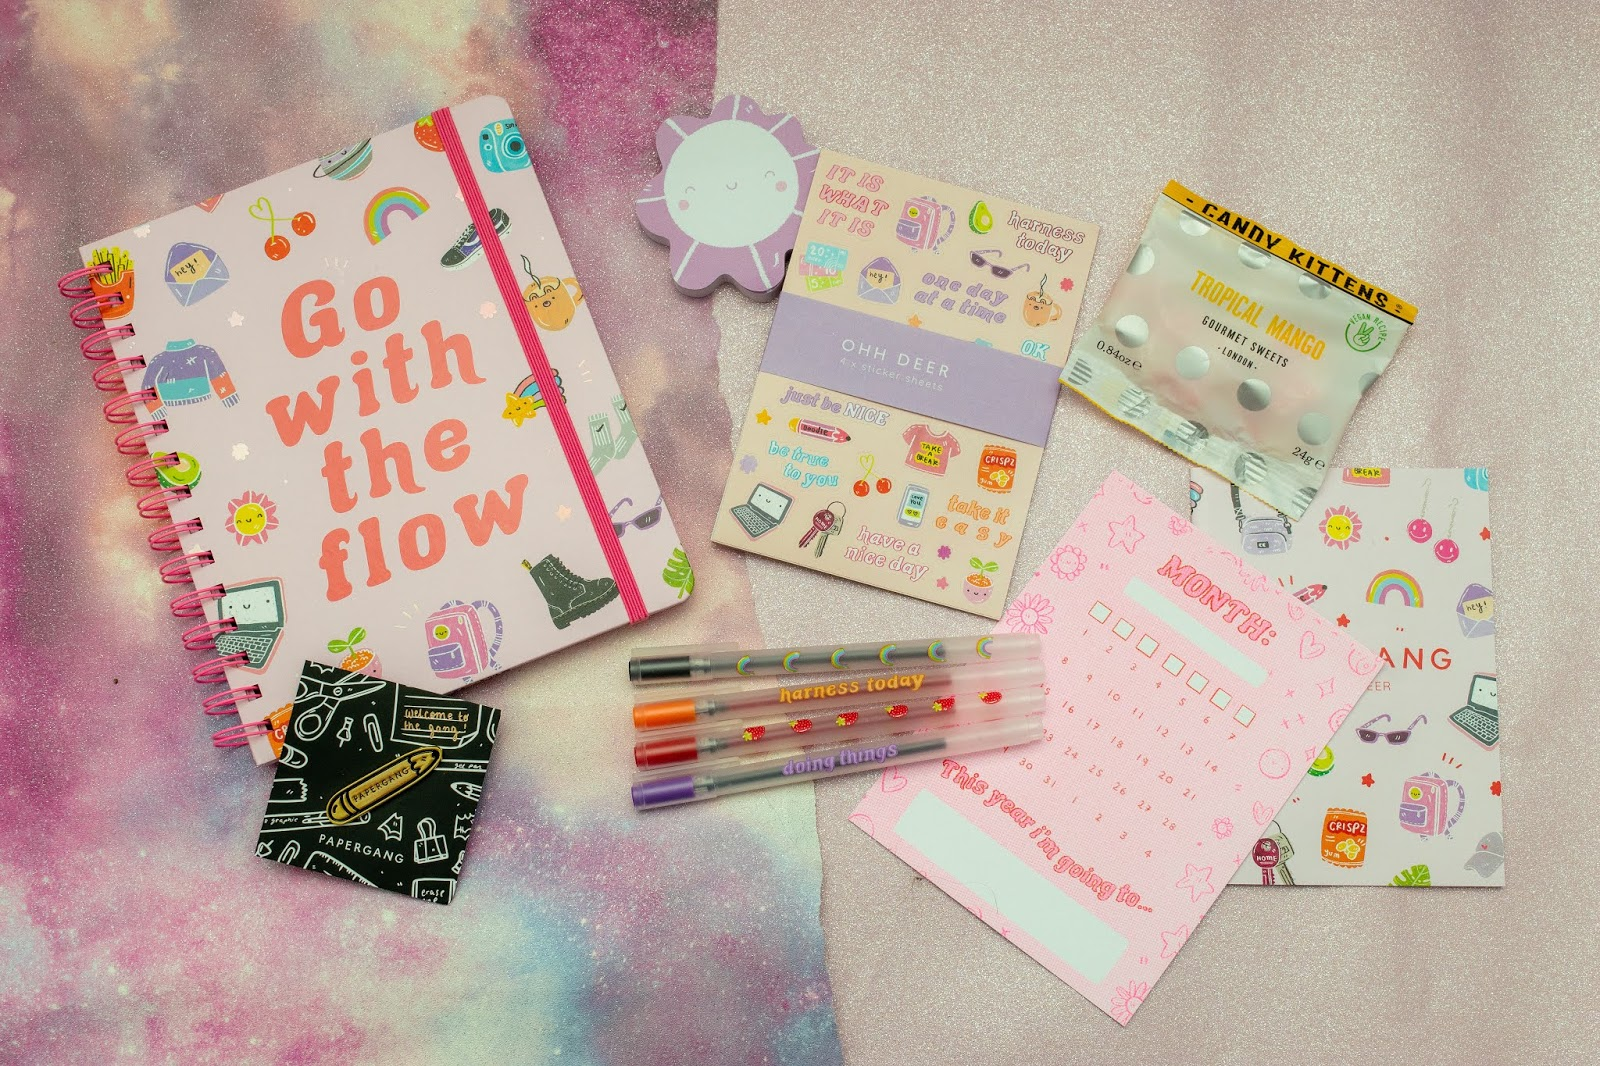 A flat lay of things including a spiral bound notebook, a pin, flower shaped paper notes, stickers, four pens, a postcard and a packet of sweets.